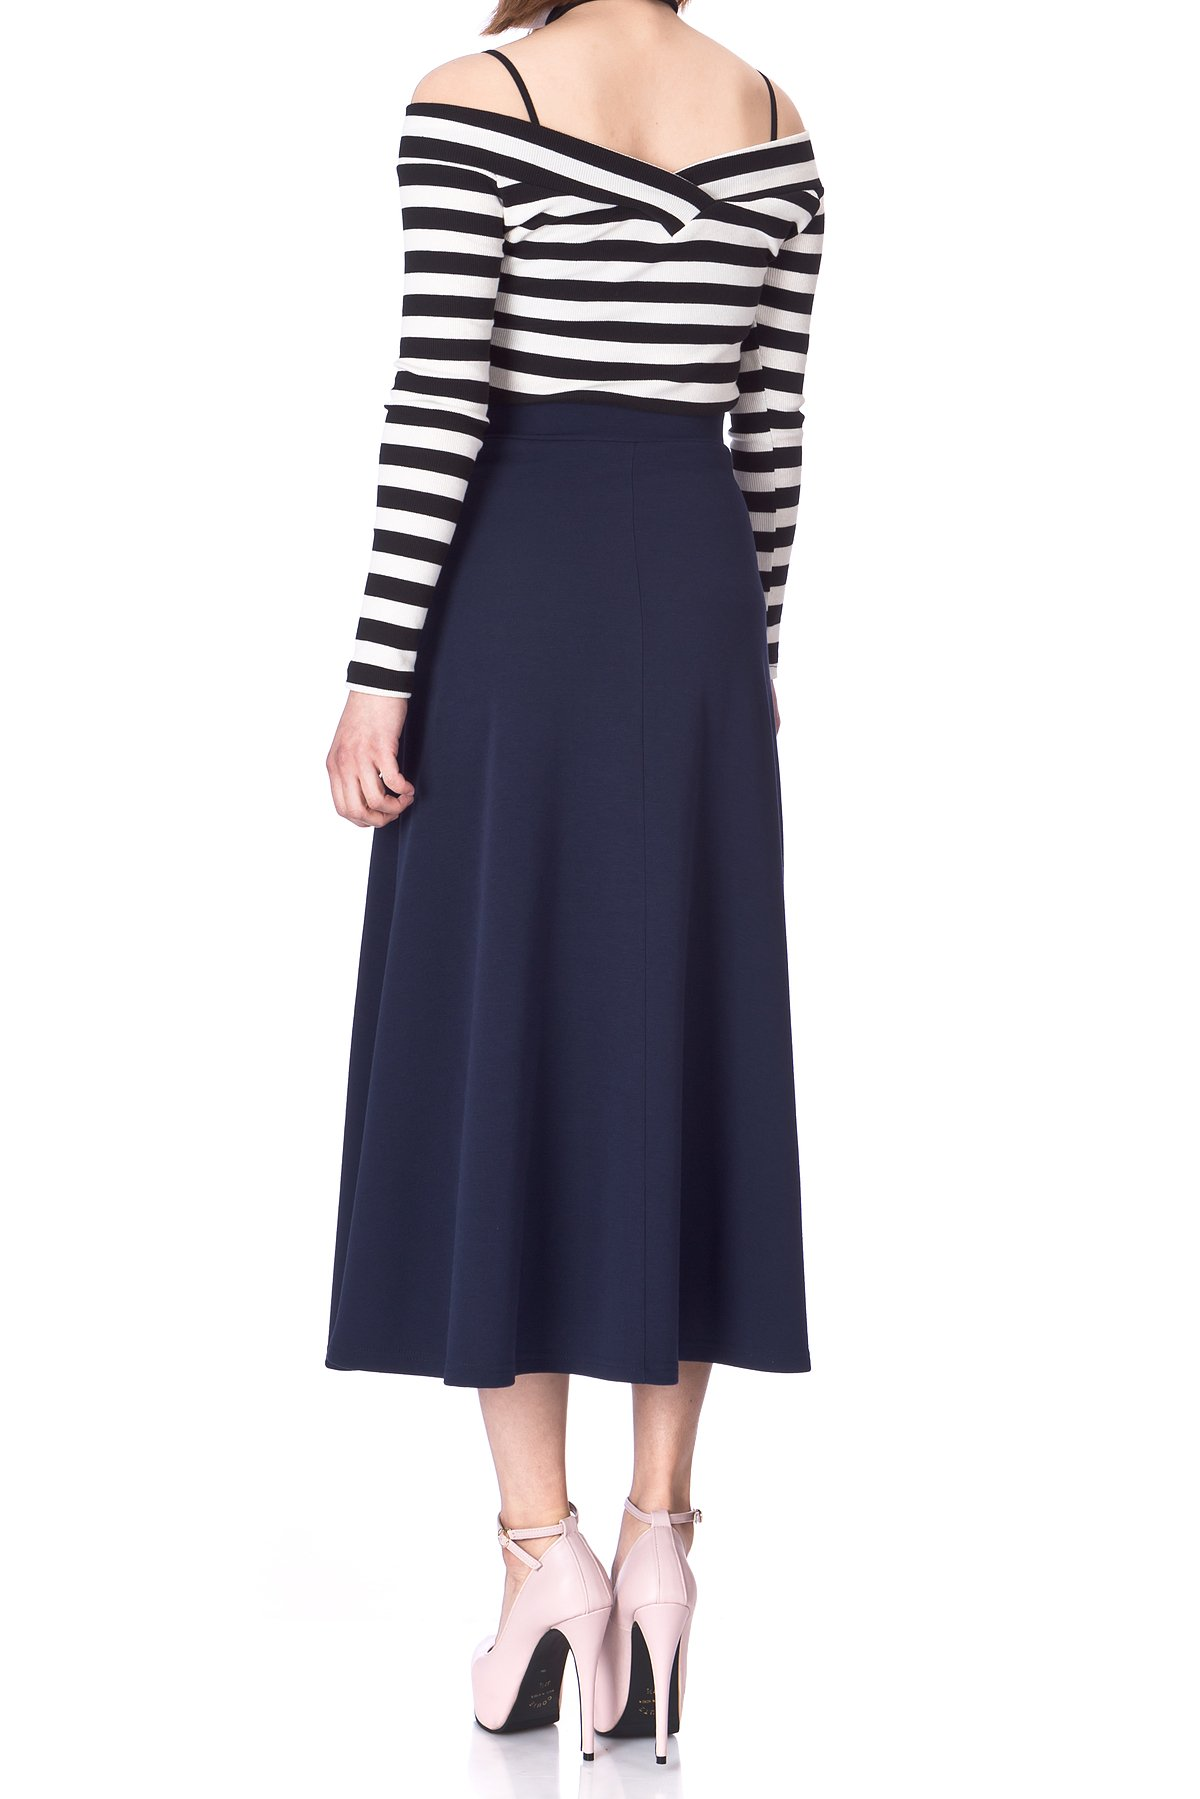 Plain Beauty Casual Office High Waist A line Full Flared Swing Skater Maxi Long Skirt Navy 04 1